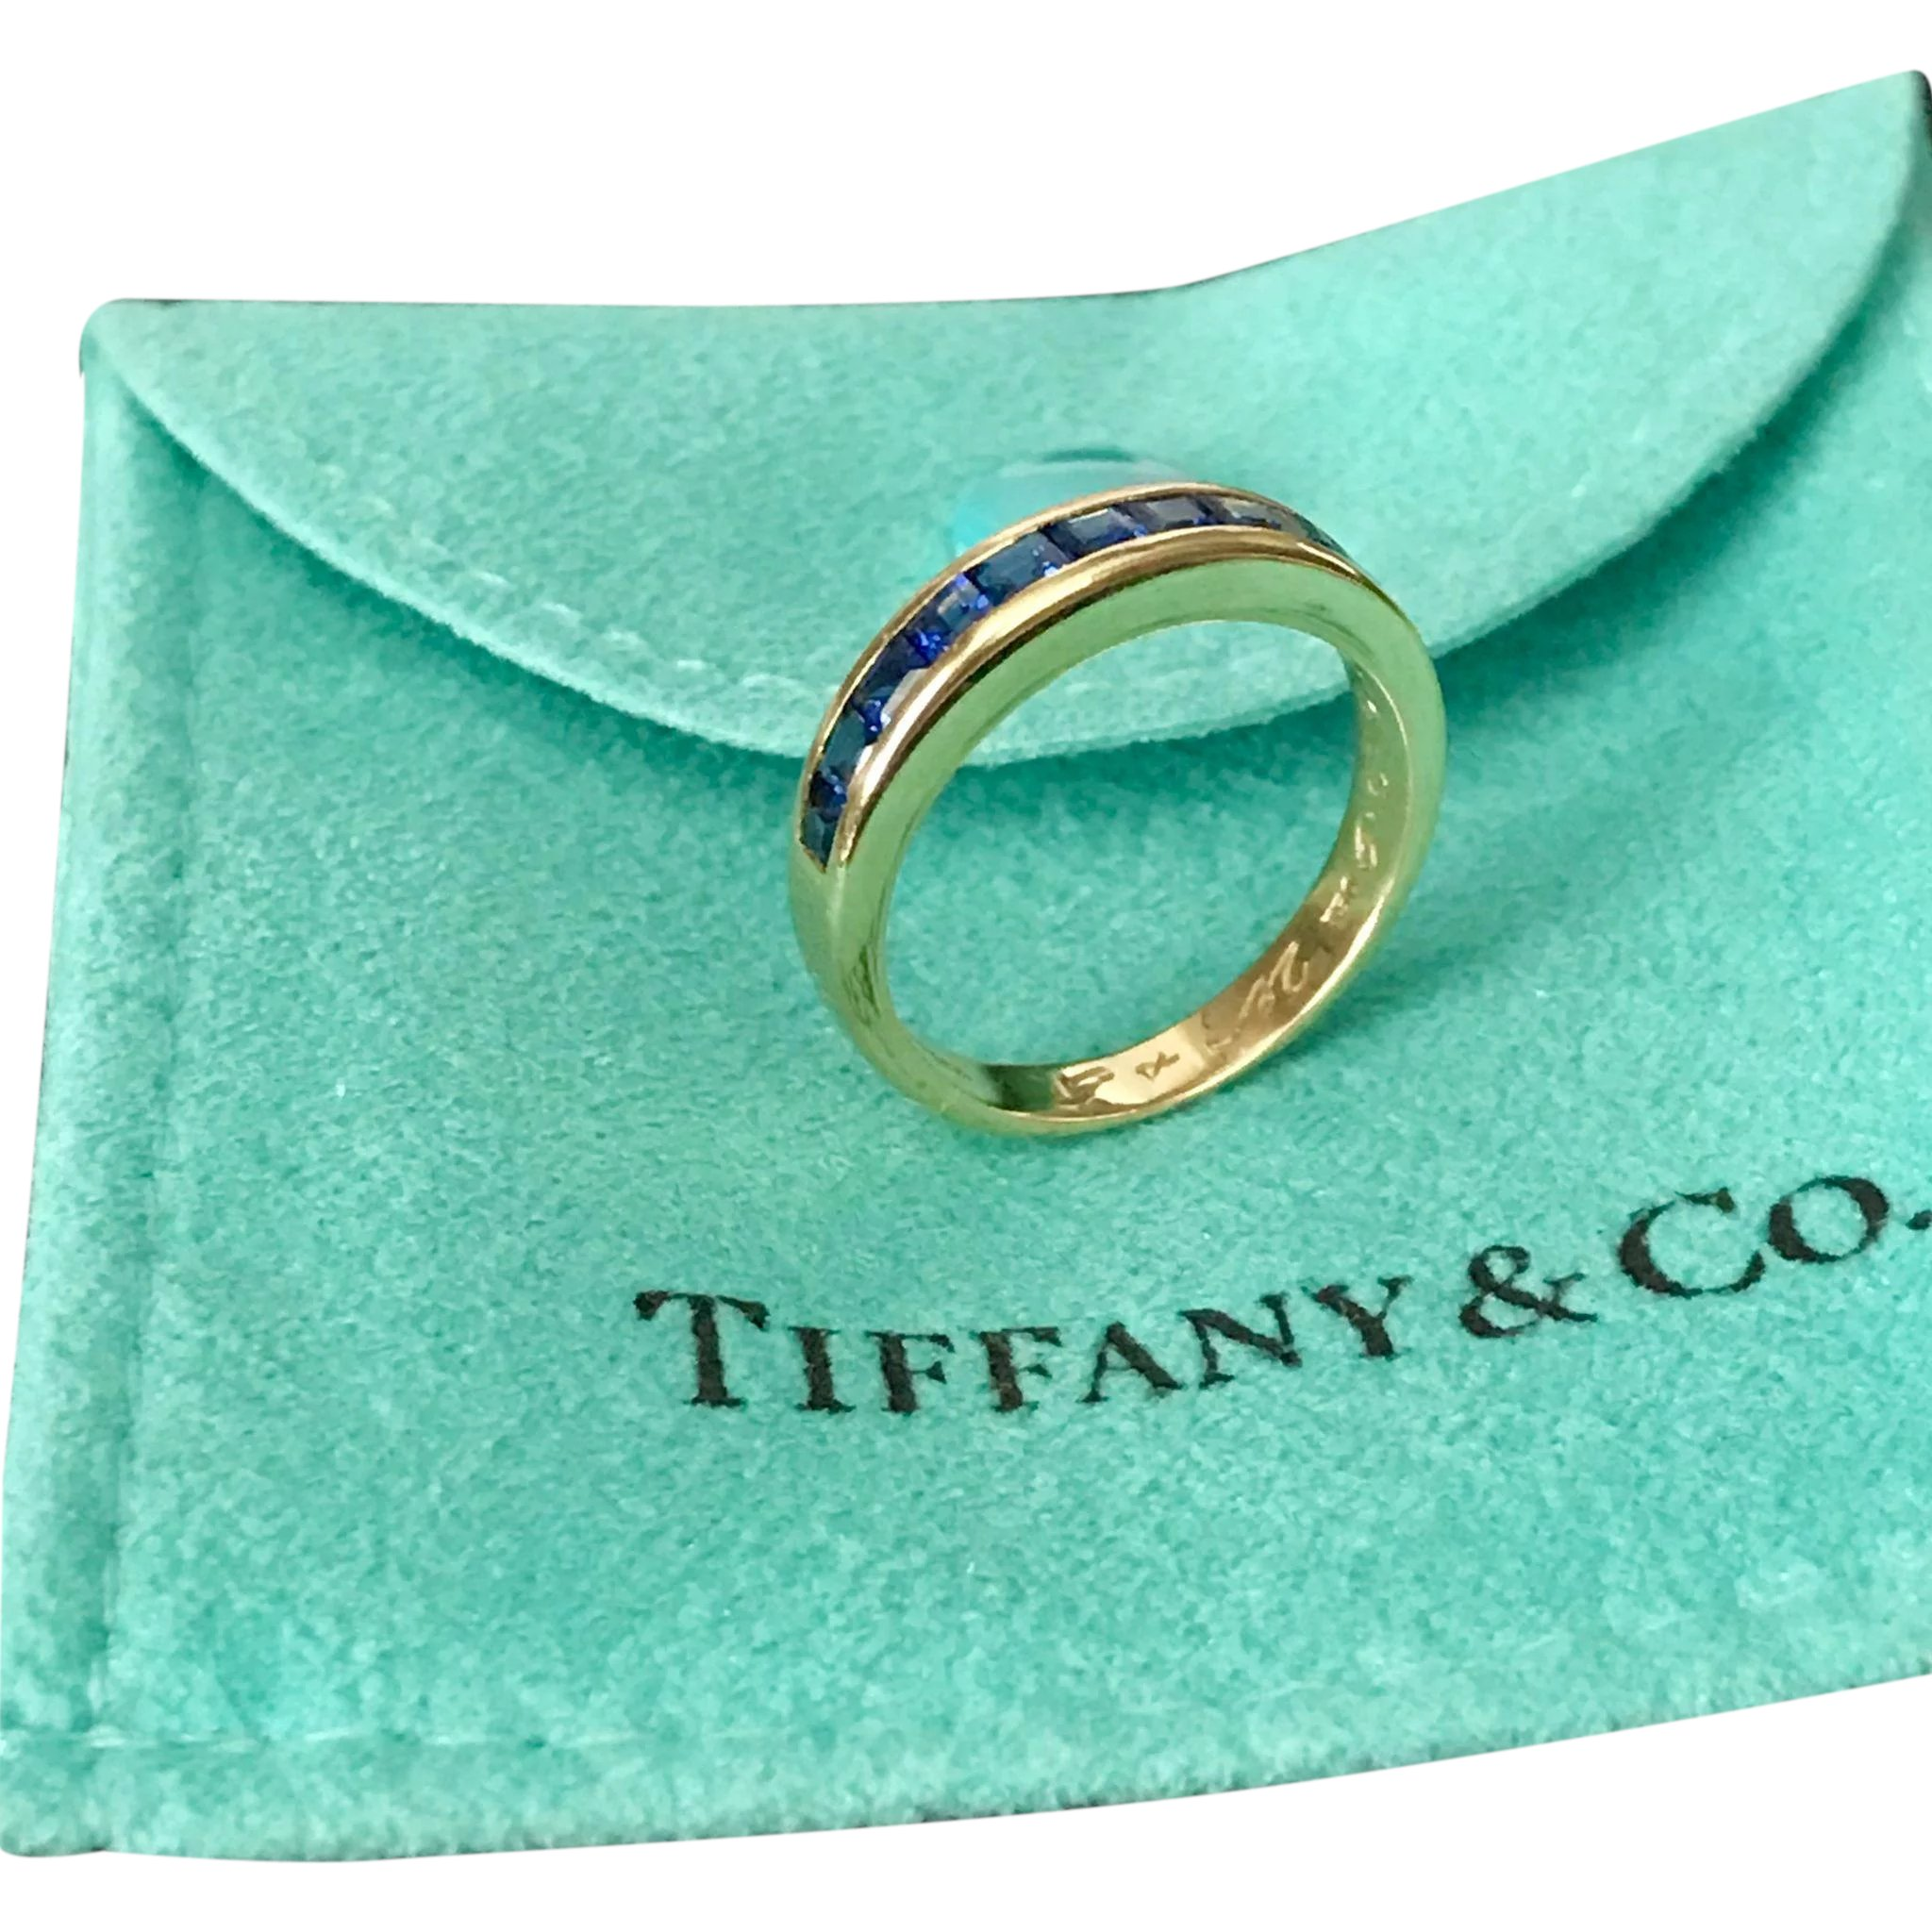 f84ac2a18 Tiffany & CO, Blue Sapphire Band, Channel Set Square Cut 18K Yellow :  Ann-tiques and Fine Jewelry | Ruby Lane